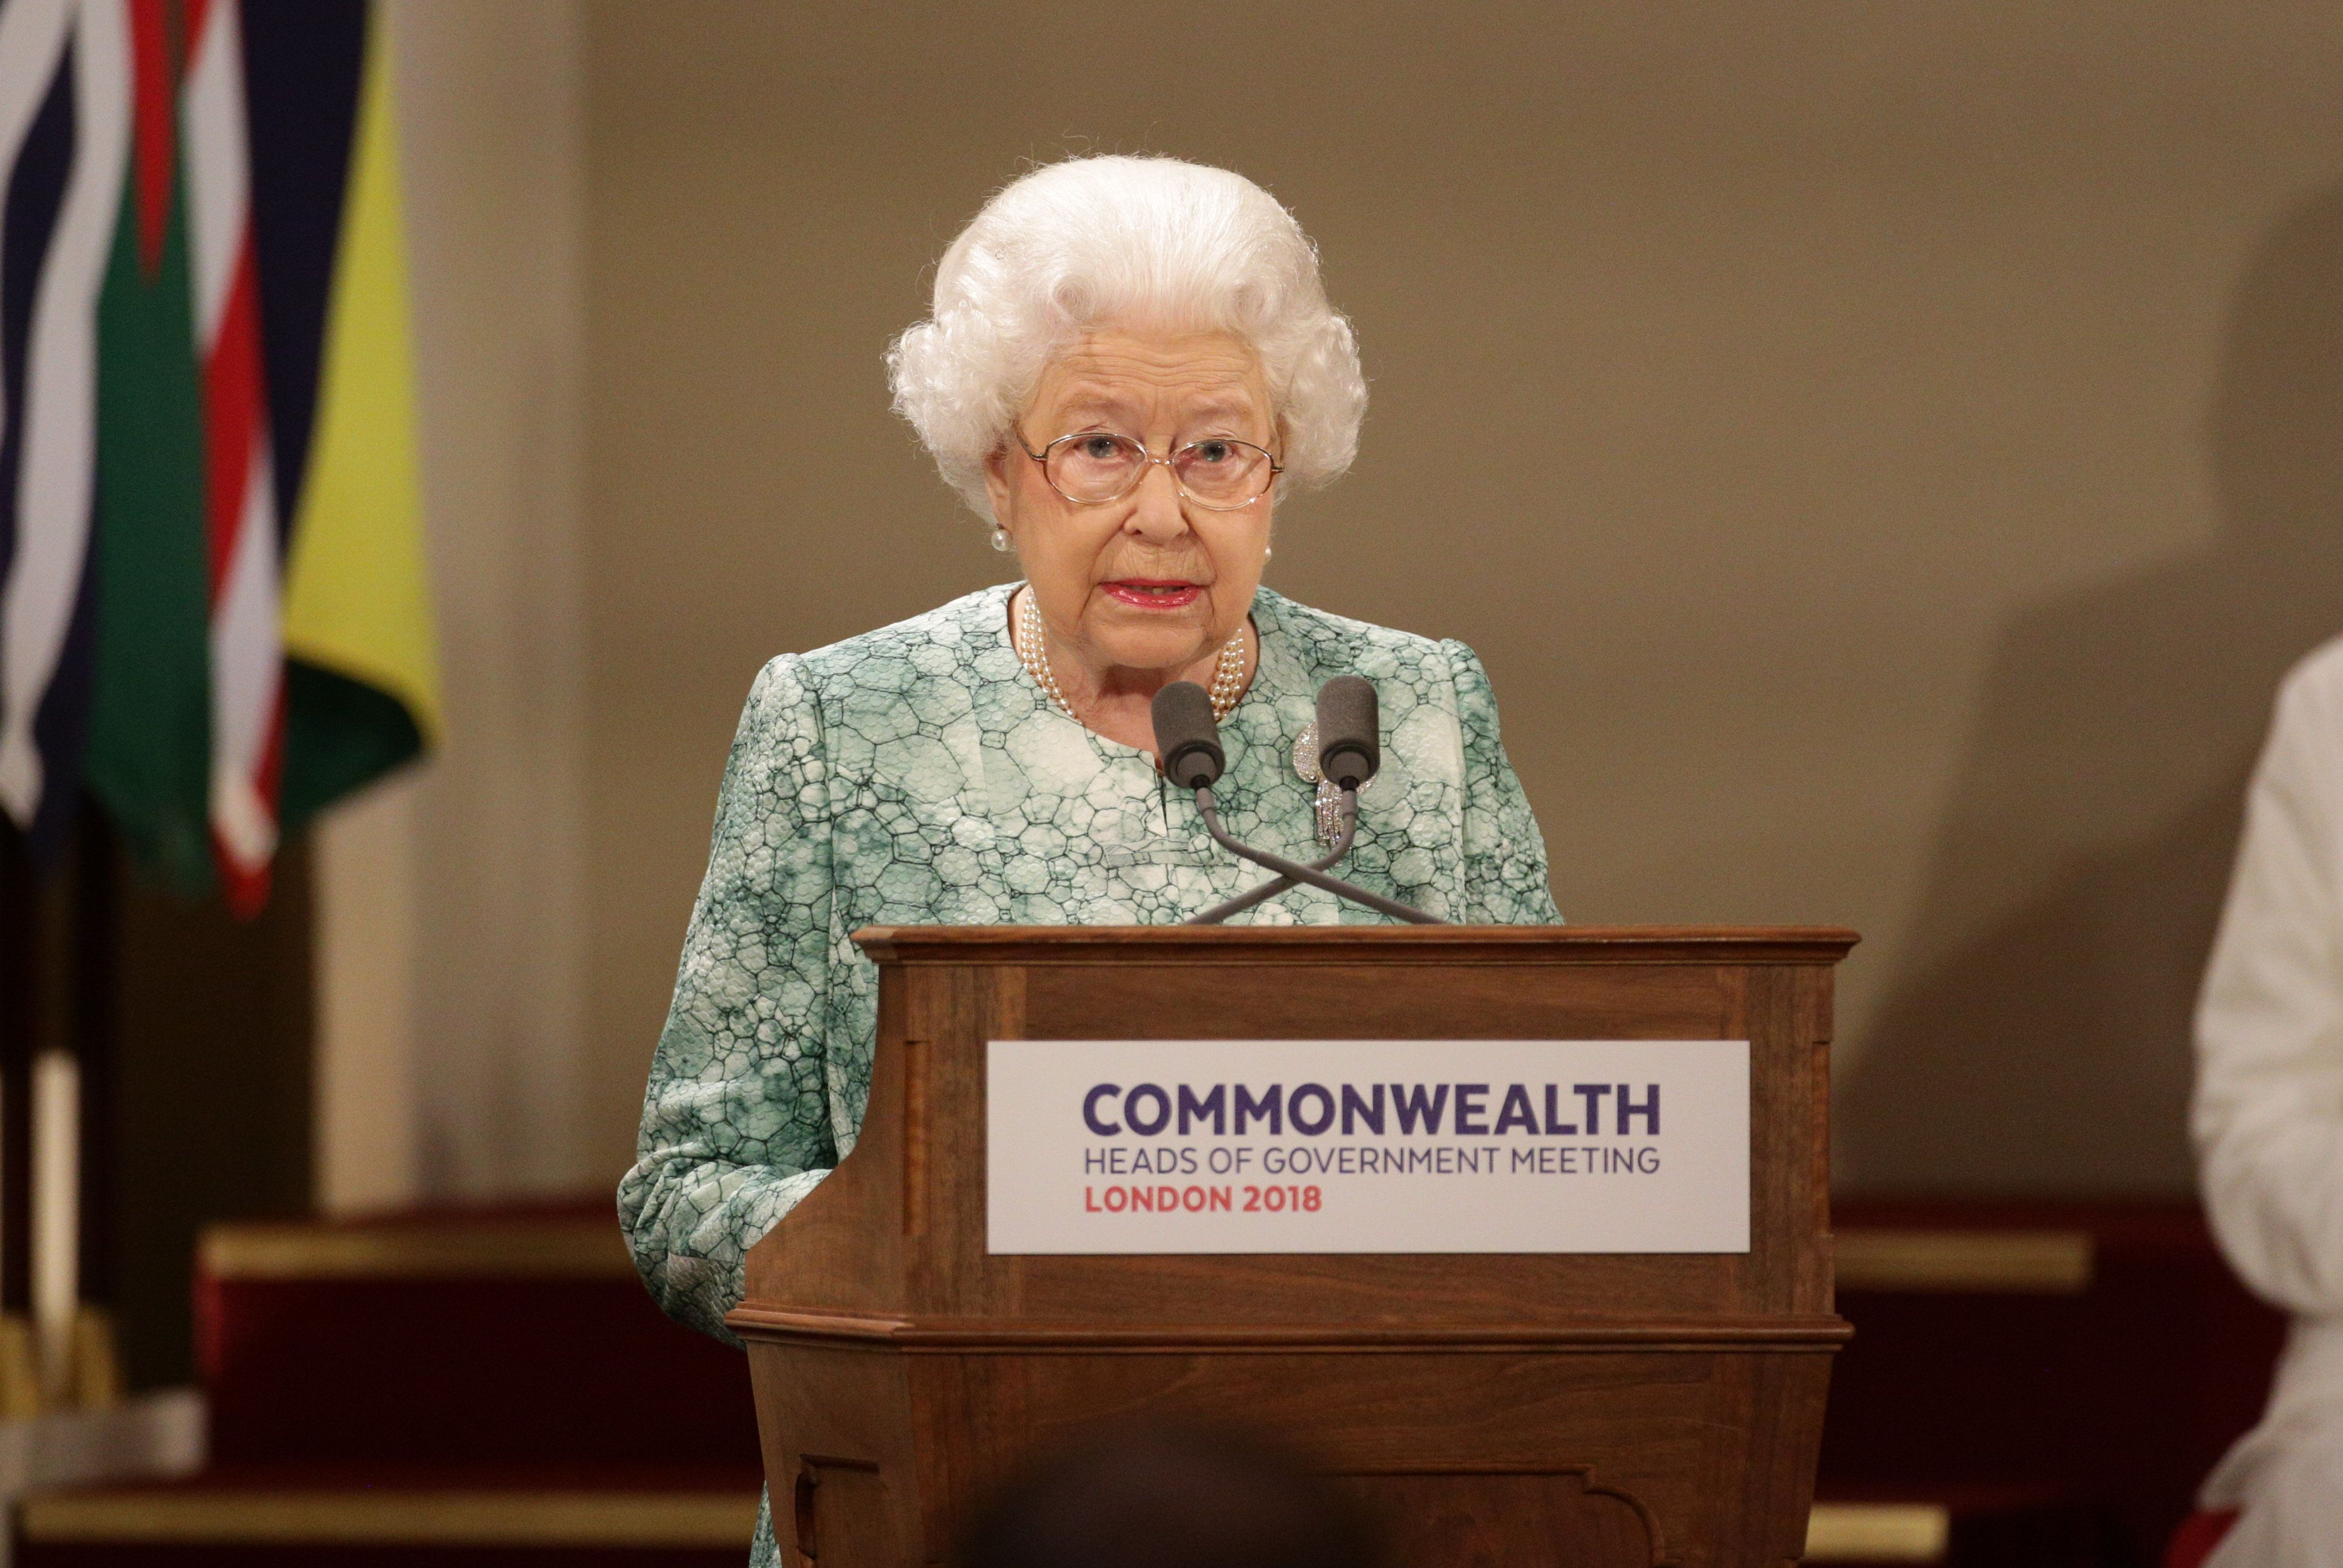 Heads of Commonwealth meet underway